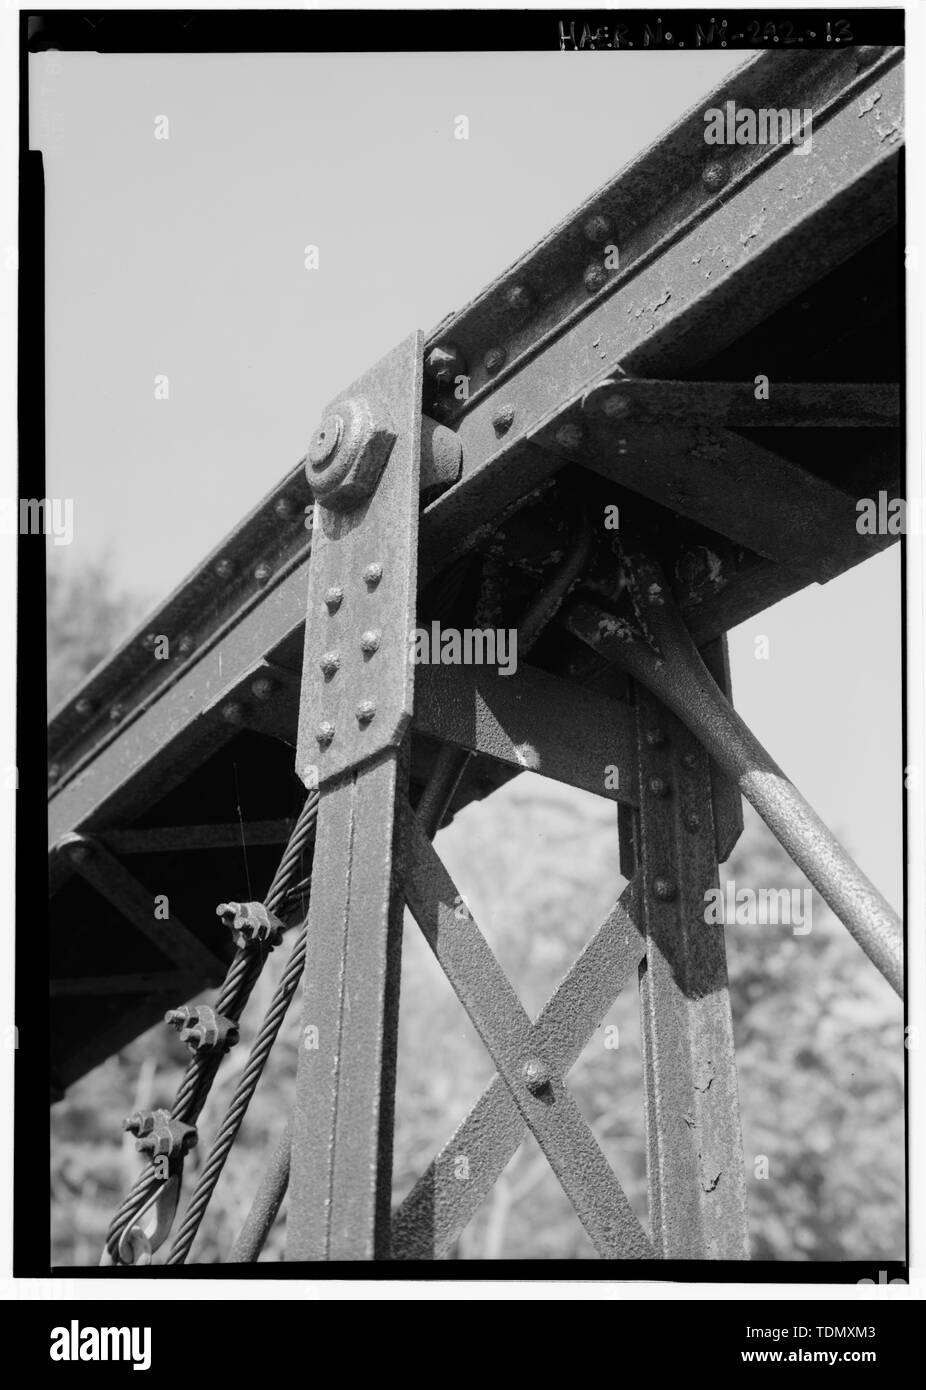 PIN CONNECTION, EYE BAR, AND LACED CHANNEL UPRIGHT CONNECTION. - Old Corinth Road Bridge, Spanning Sacandaga River at Corinth Road, Hadley, Saratoga County, NY - Stock Image